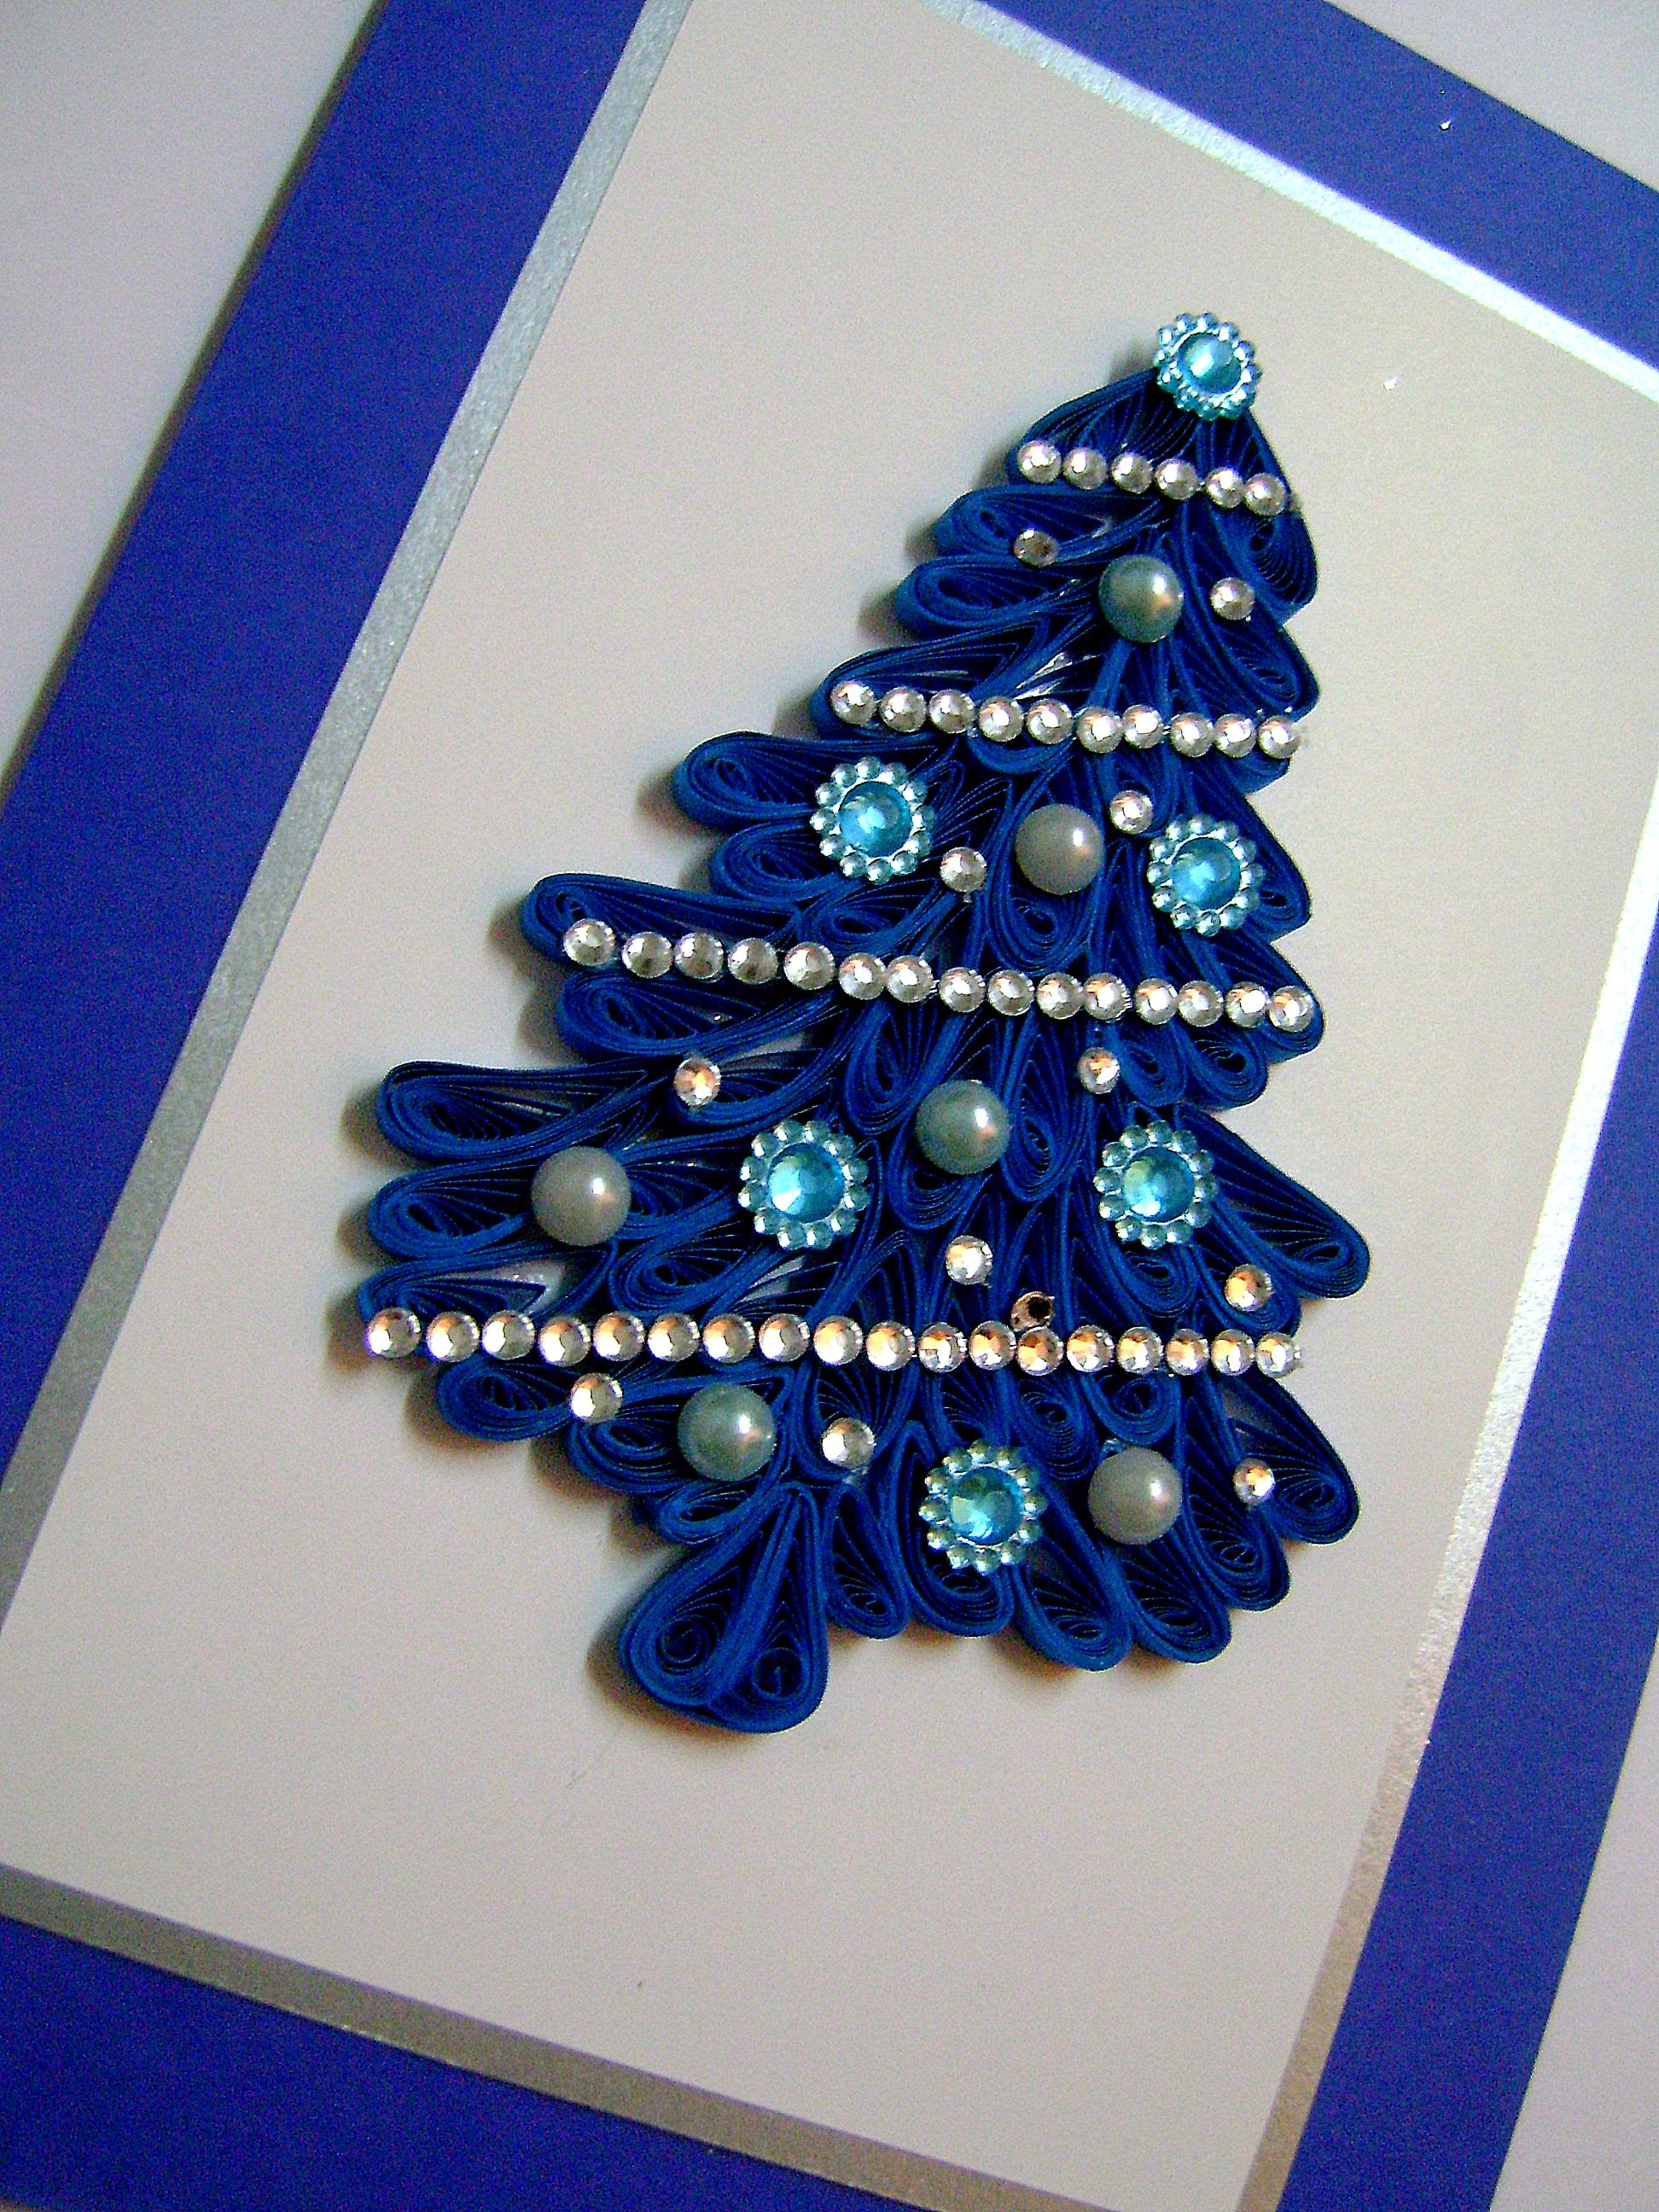 Quilled Christmas Tree Quilling Christmas Quilling Designs Quilling Paper Craft